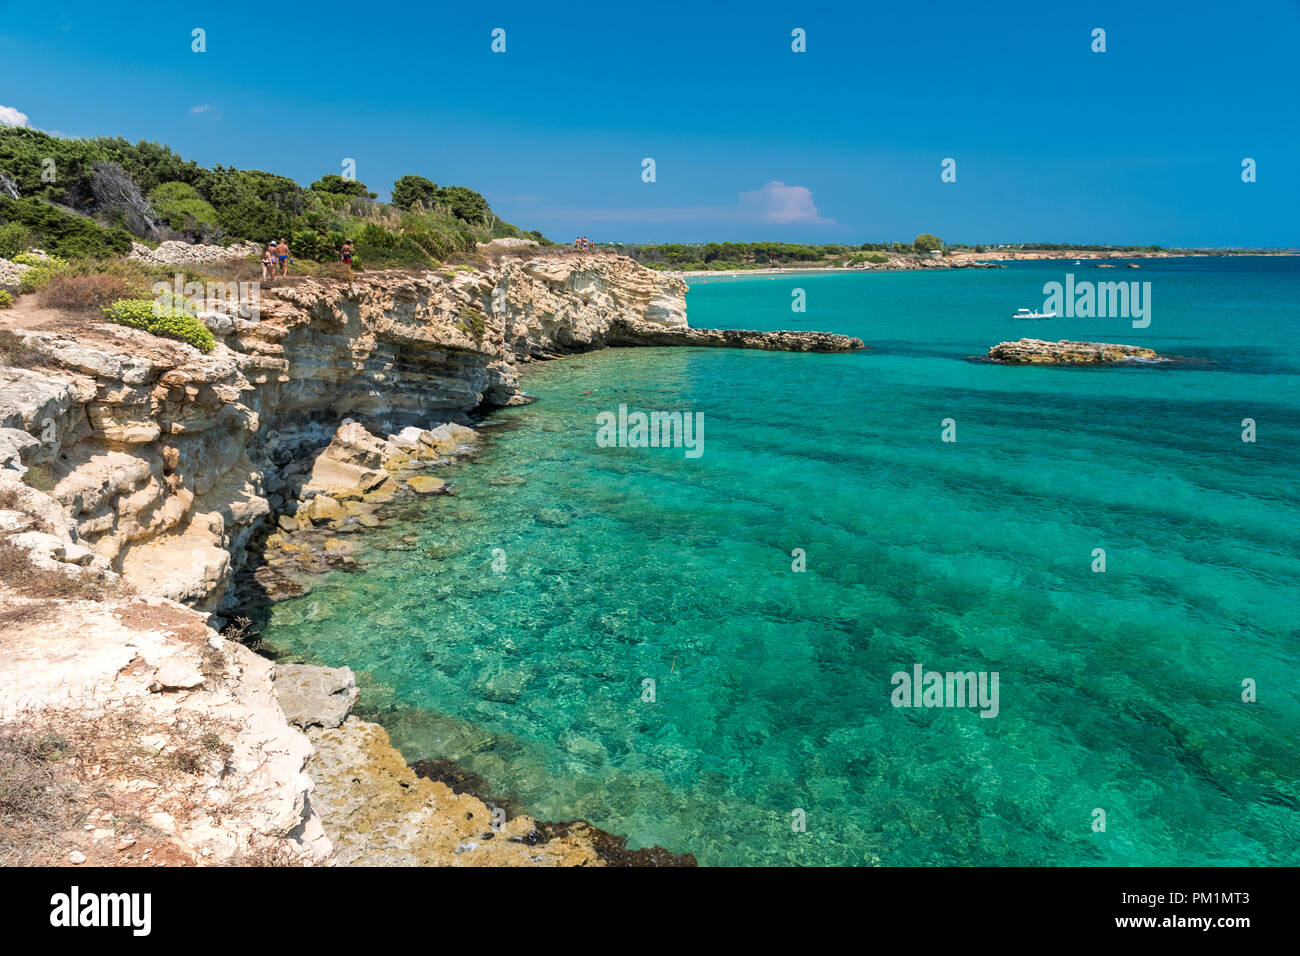 Rocky coastline in the Gelsomineto area, near Siracusa - Stock Image